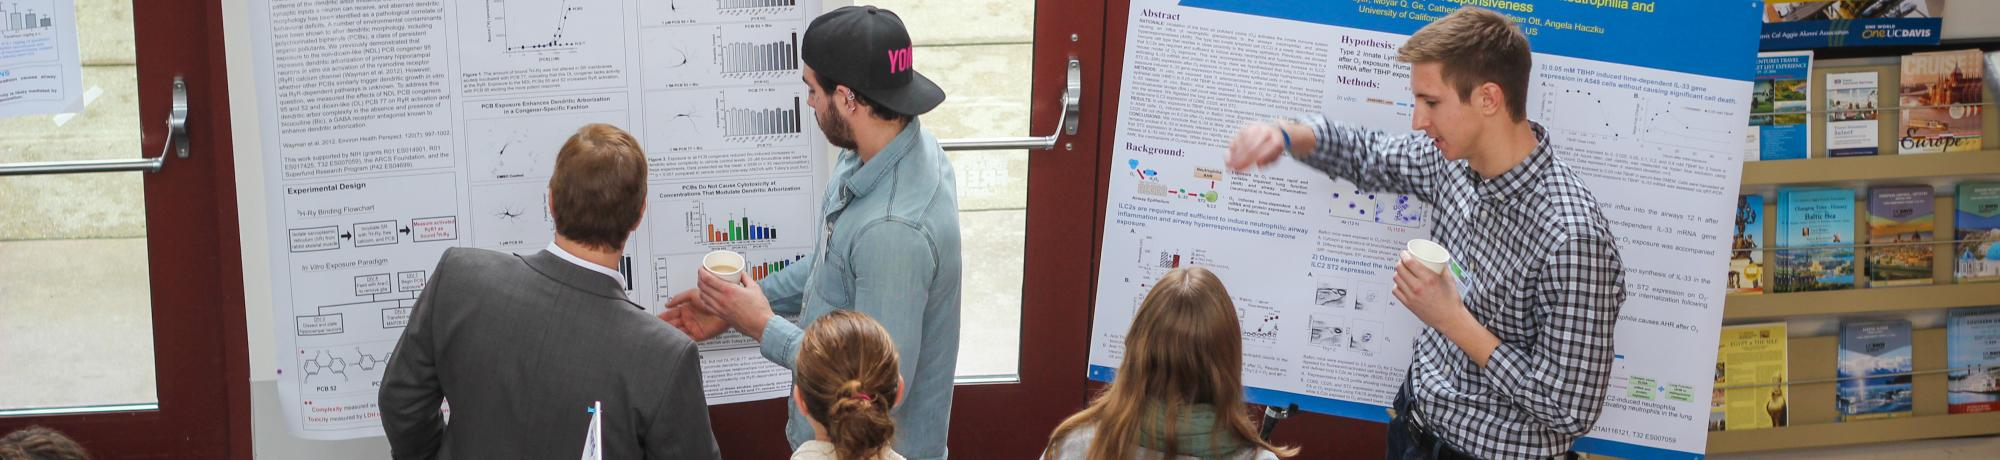 Scientists at poster presentation